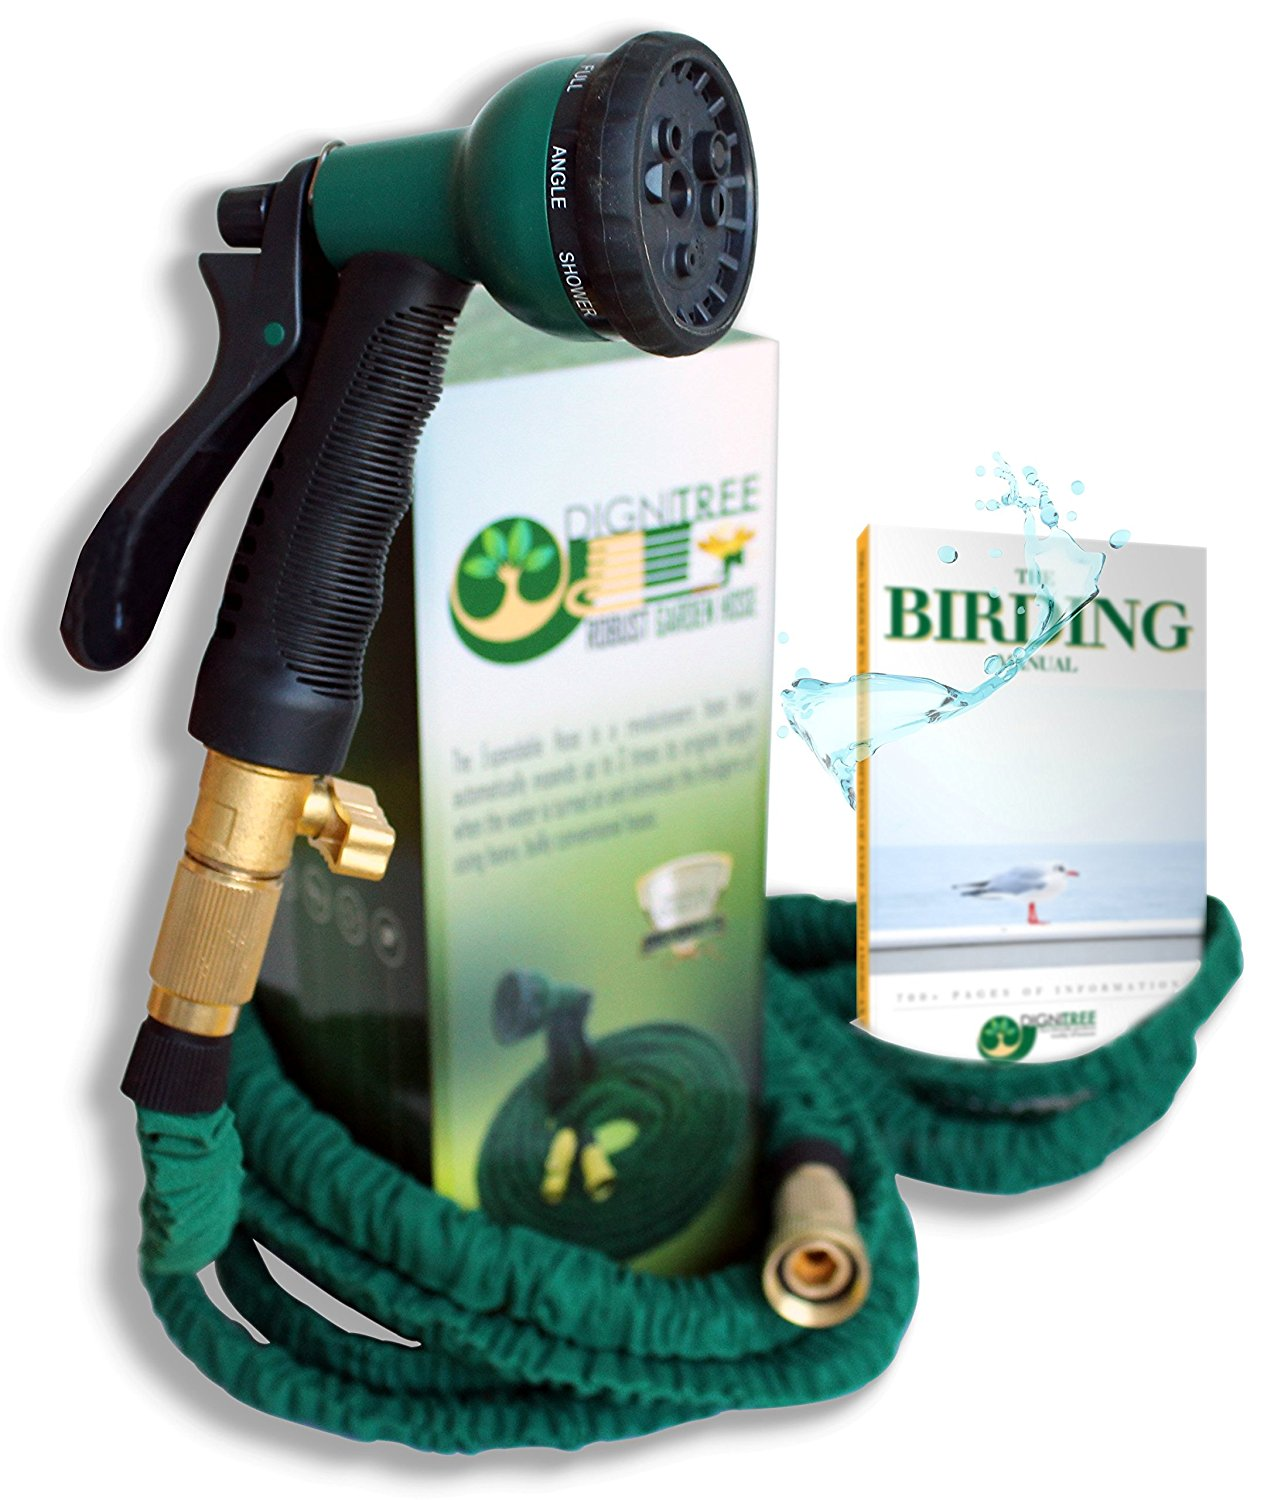 Premium 50 FT Expandable Garden Hose, Patent Pending Spandex Material 100% Brass Fittings... by Dignitree